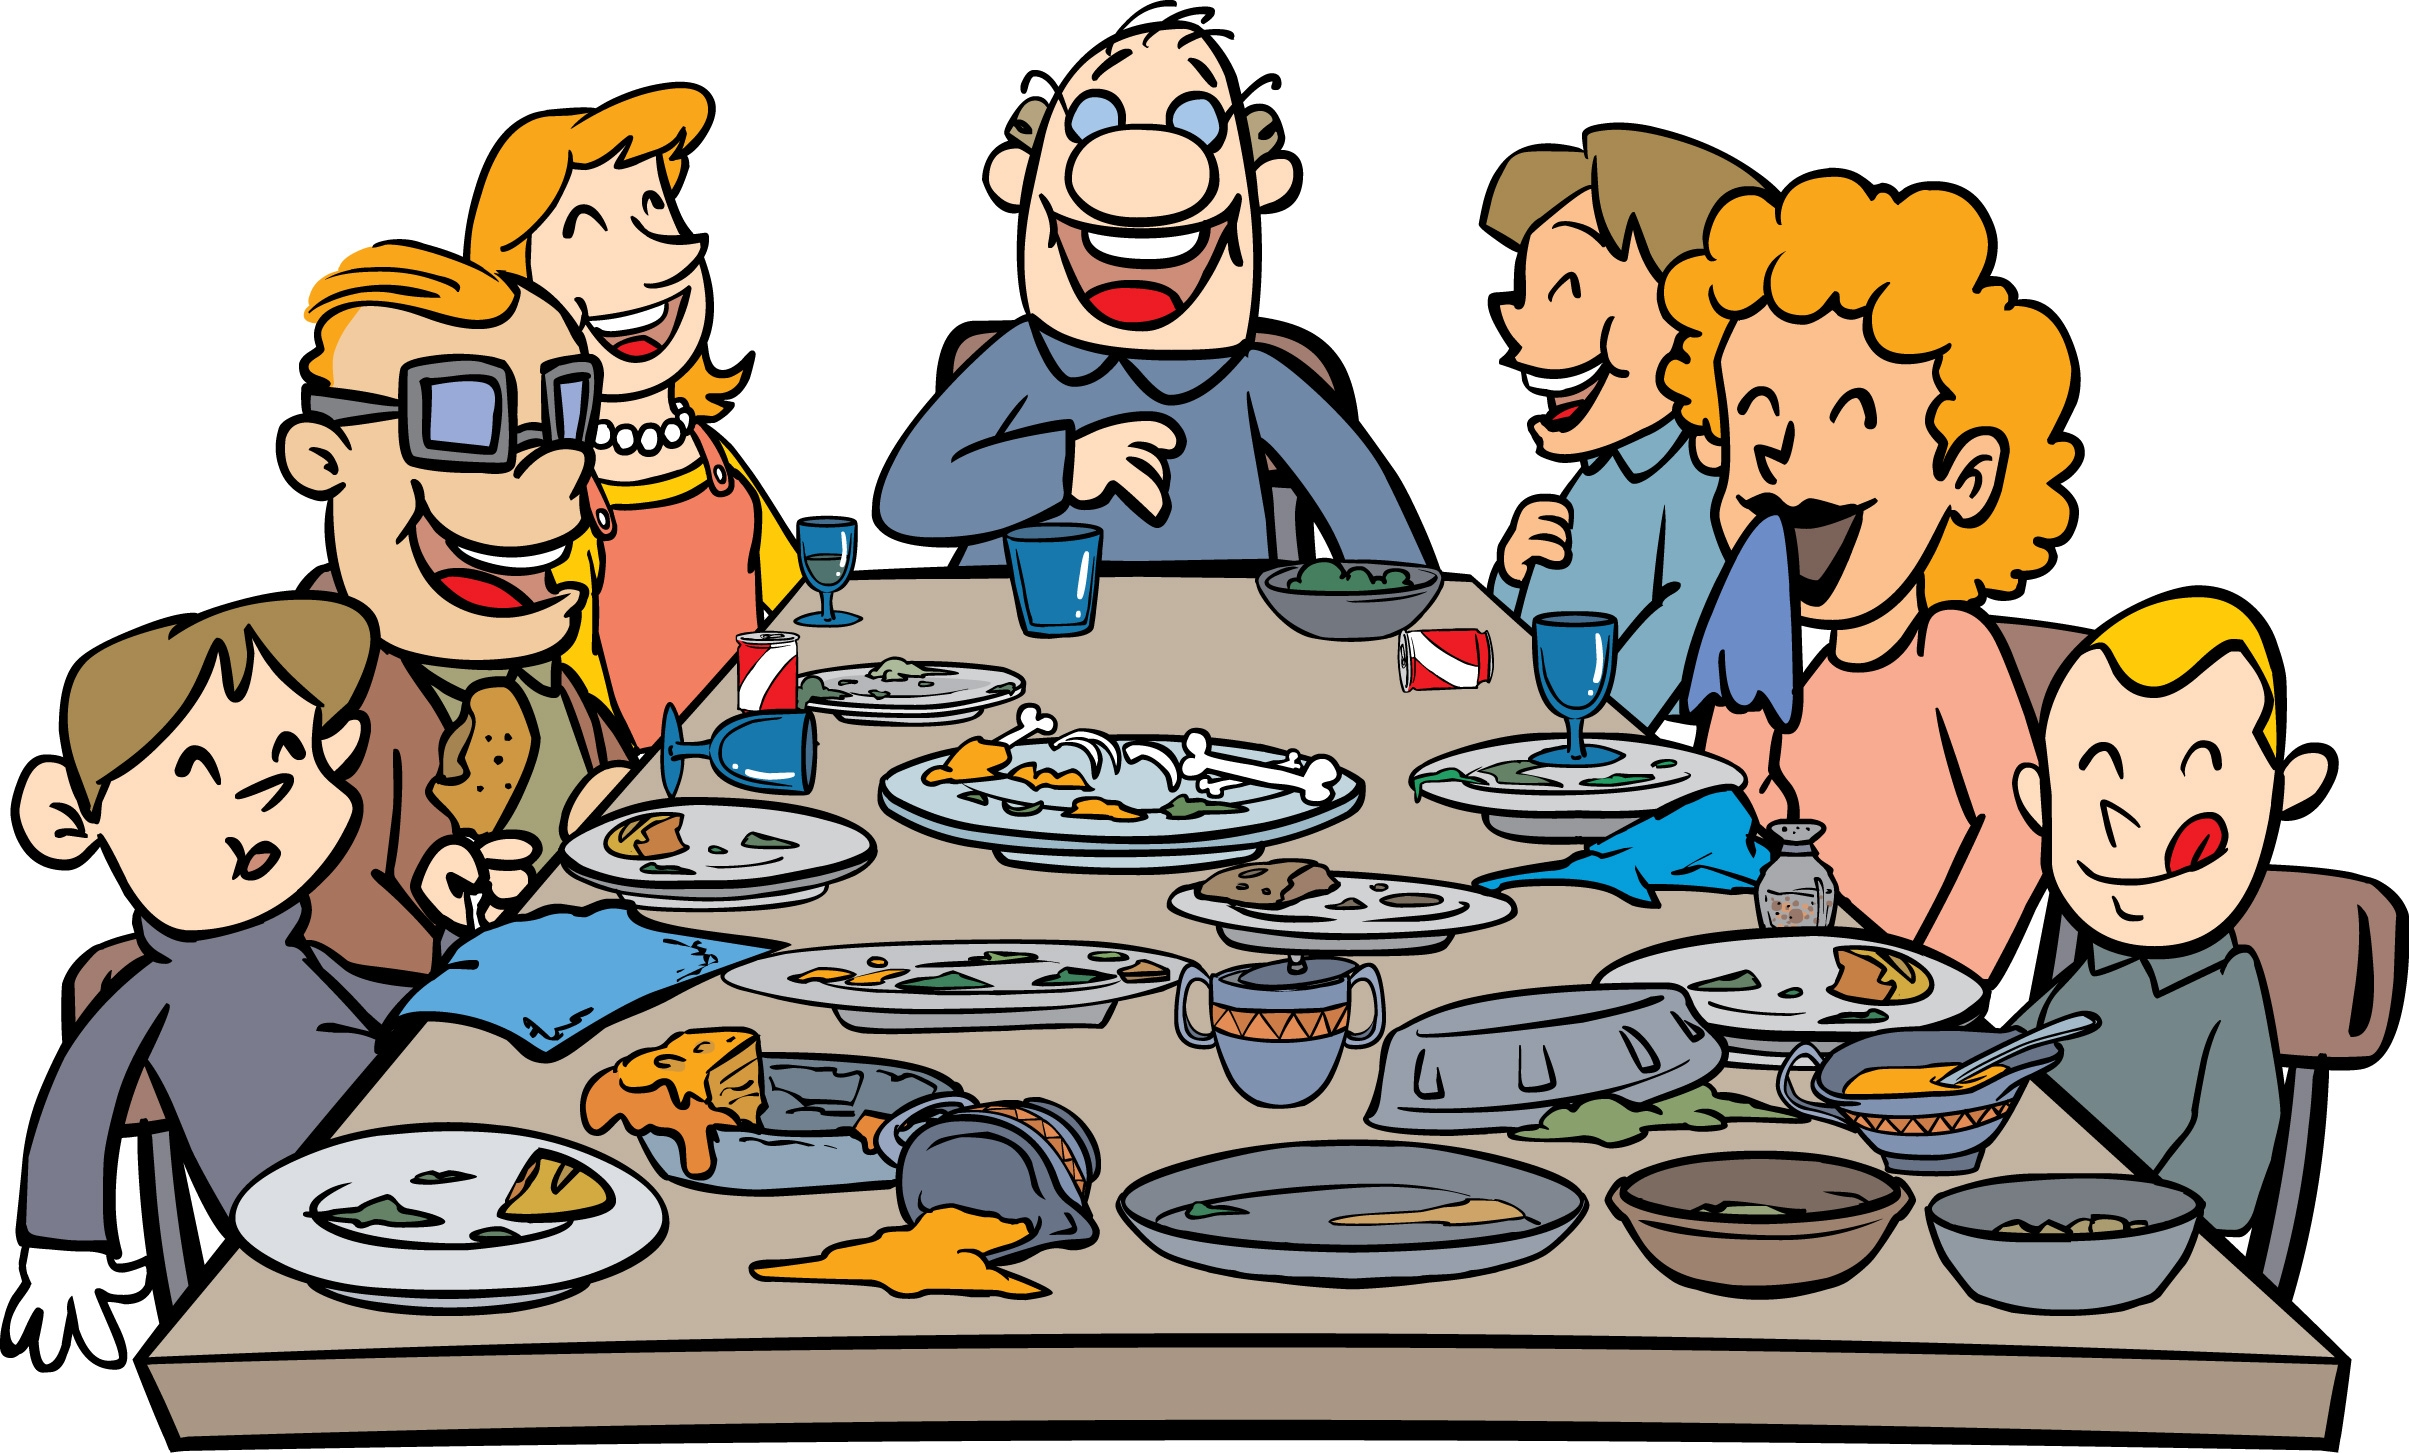 Thankgiving dinner clipart clipart freeuse Eating thanksgiving dinner clipart - ClipartFest freeuse